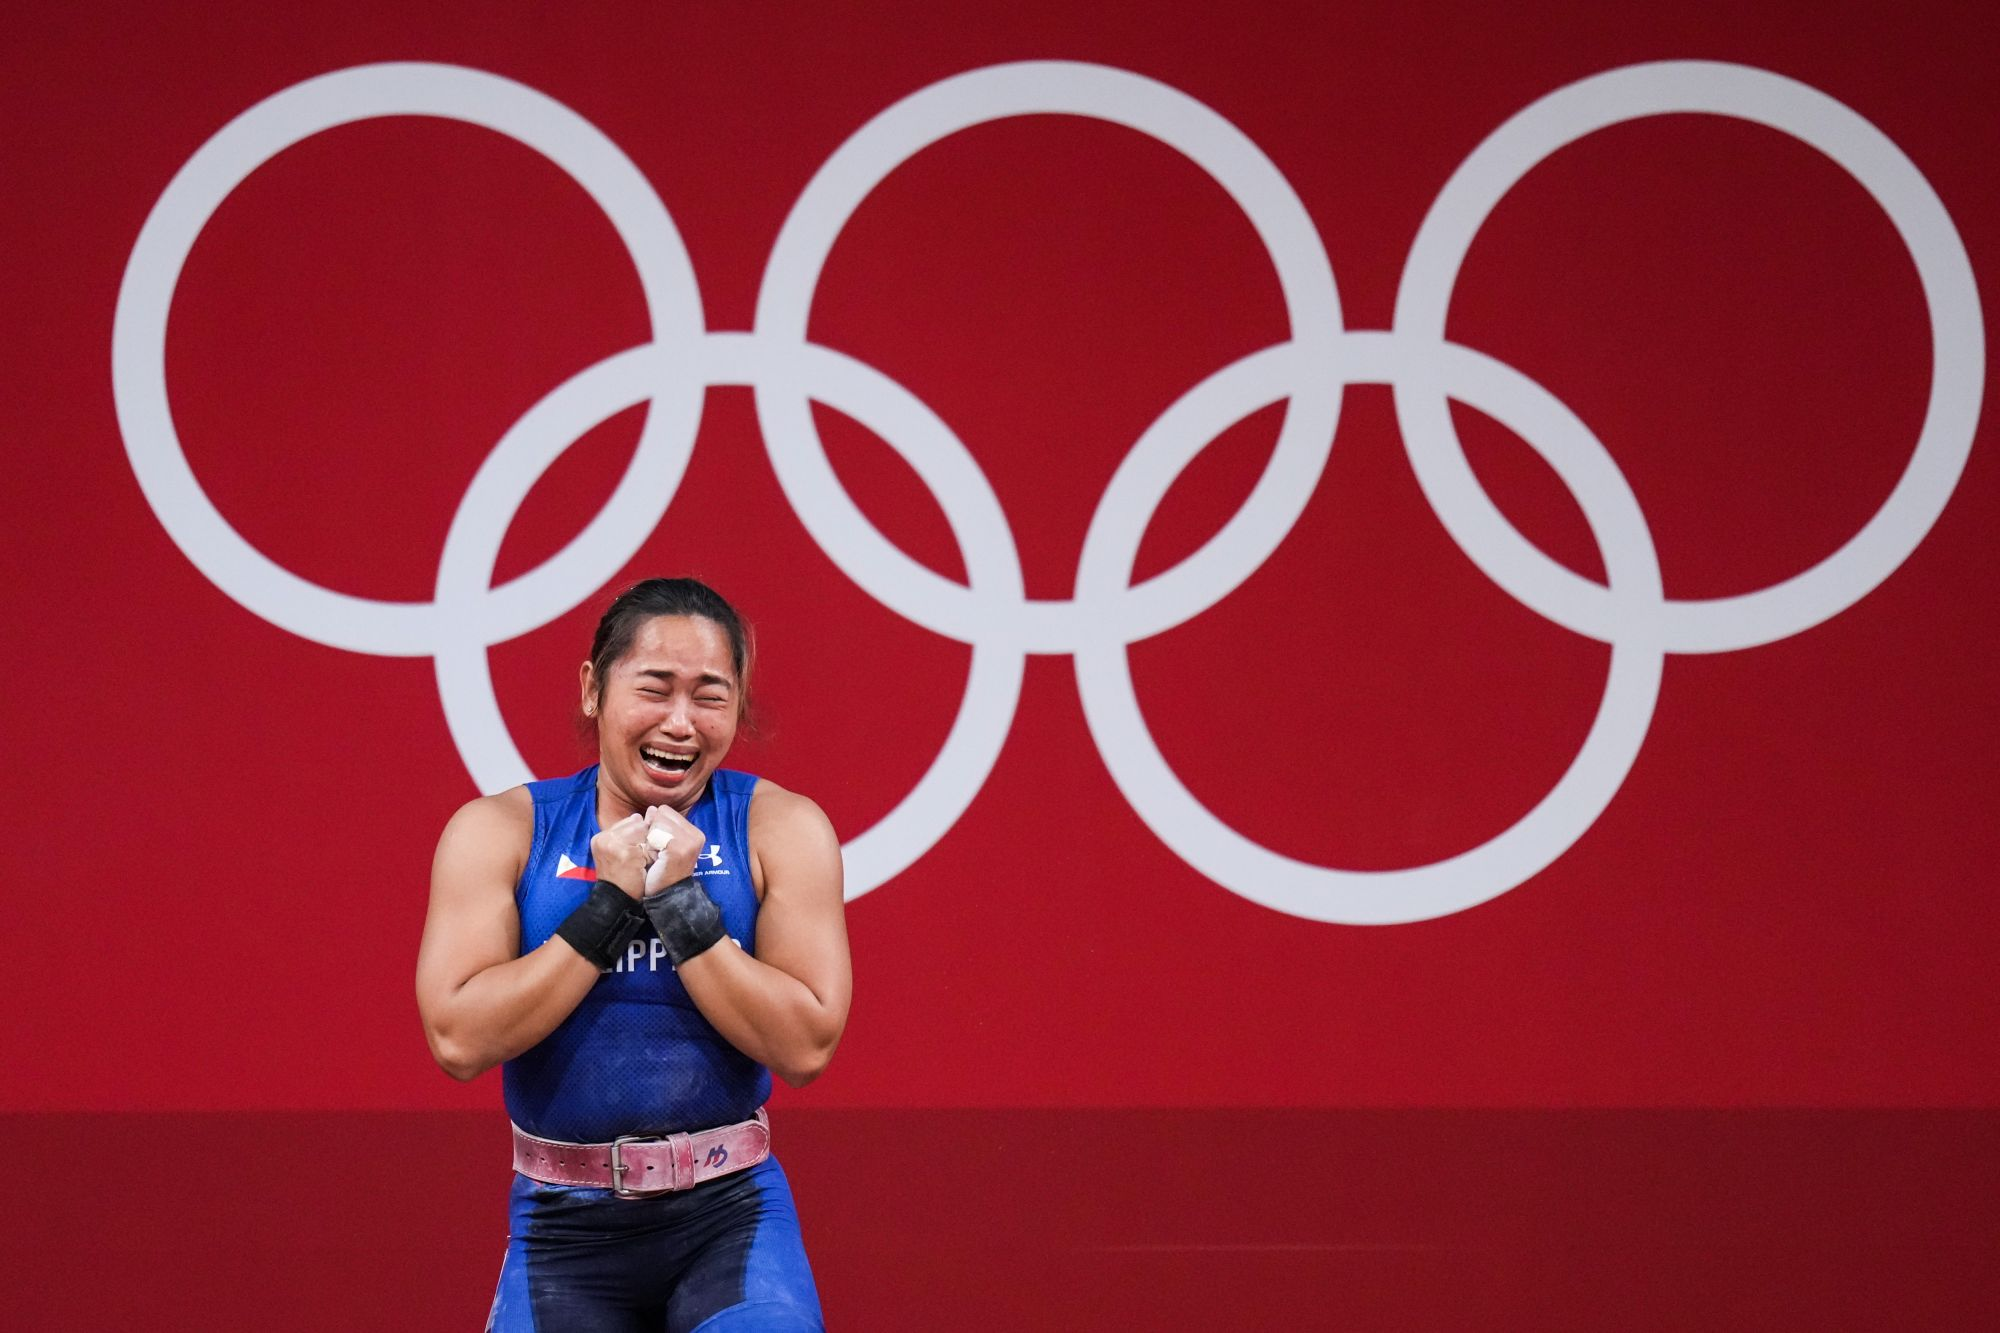 TOKYO, JAPAN - JULY 26: Hidilyn Diaz of Philippines cries after winning the Women's 55kg Weightlifting Group A match on day three of the Tokyo 2020 Olympic Games at the Tokyo International Forum on July 26, 2021 in Tokyo, Japan. (Photo by An Lingjun/CHINASPORTS/VCG via Getty Images)